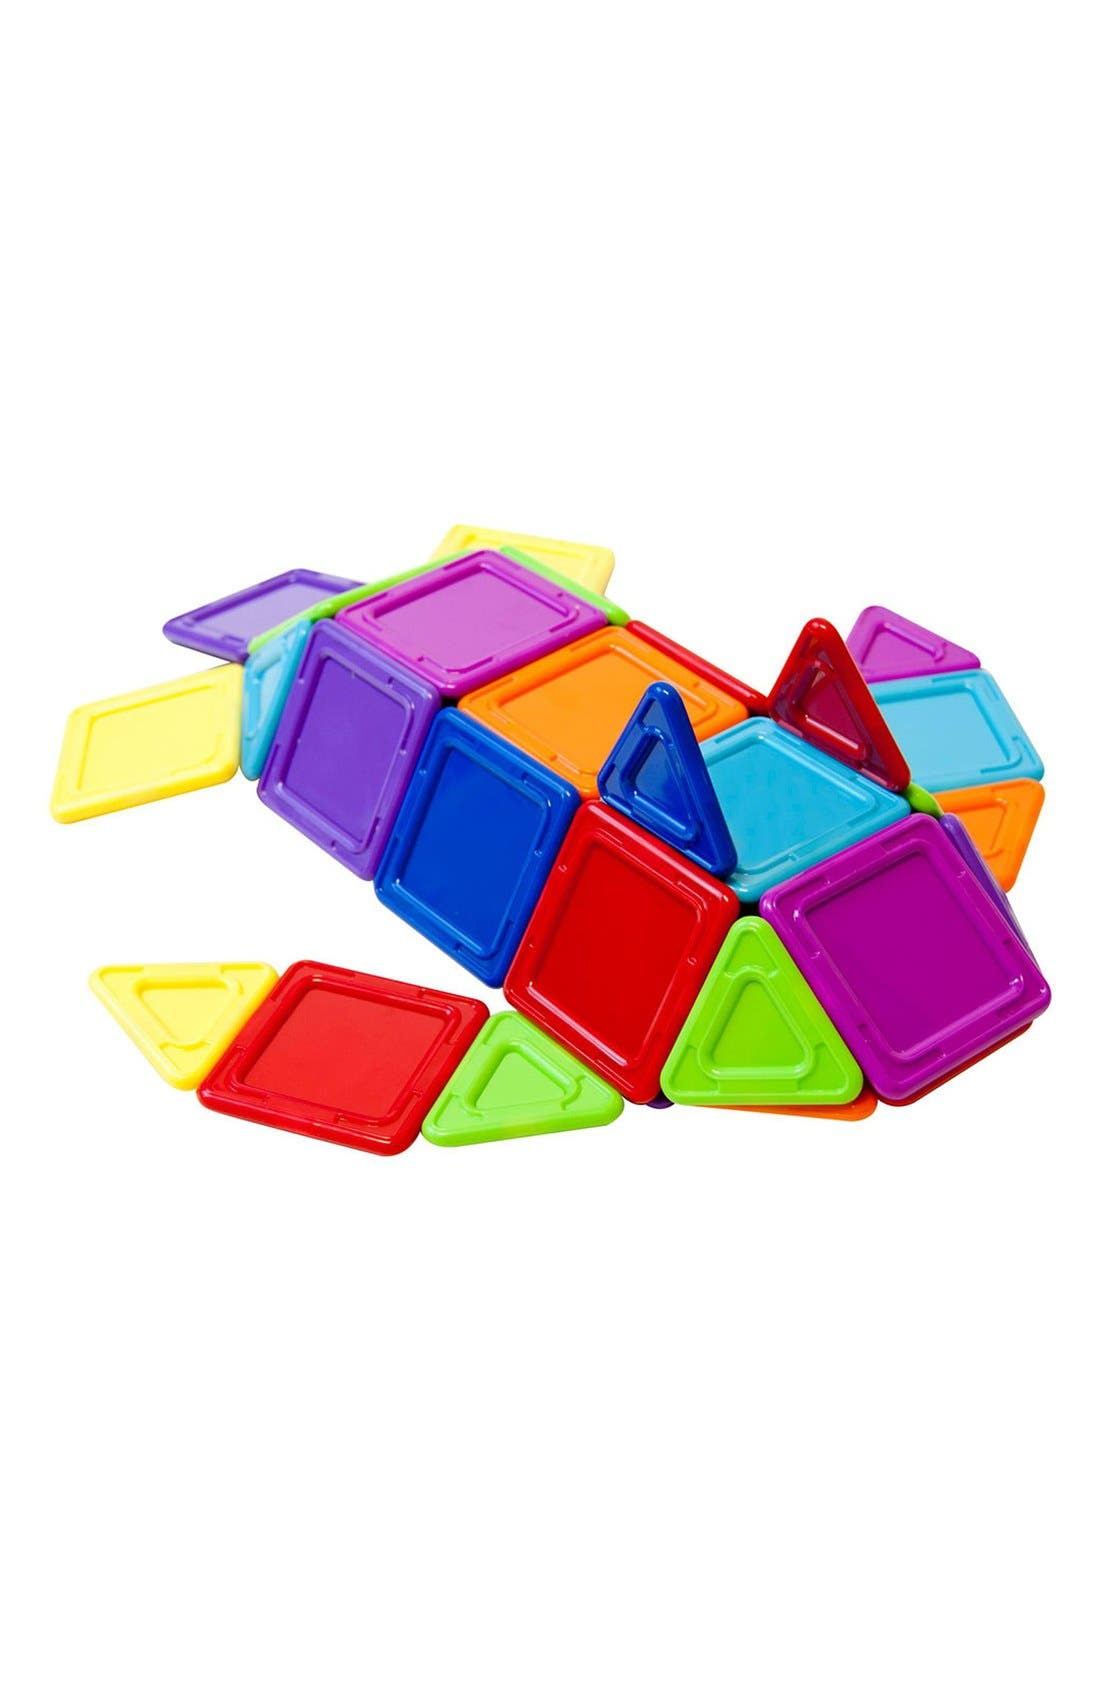 'Standard - Solids' Opaque Magnetic 3D Construction Set,                             Alternate thumbnail 4, color,                             Opaque Rainbow